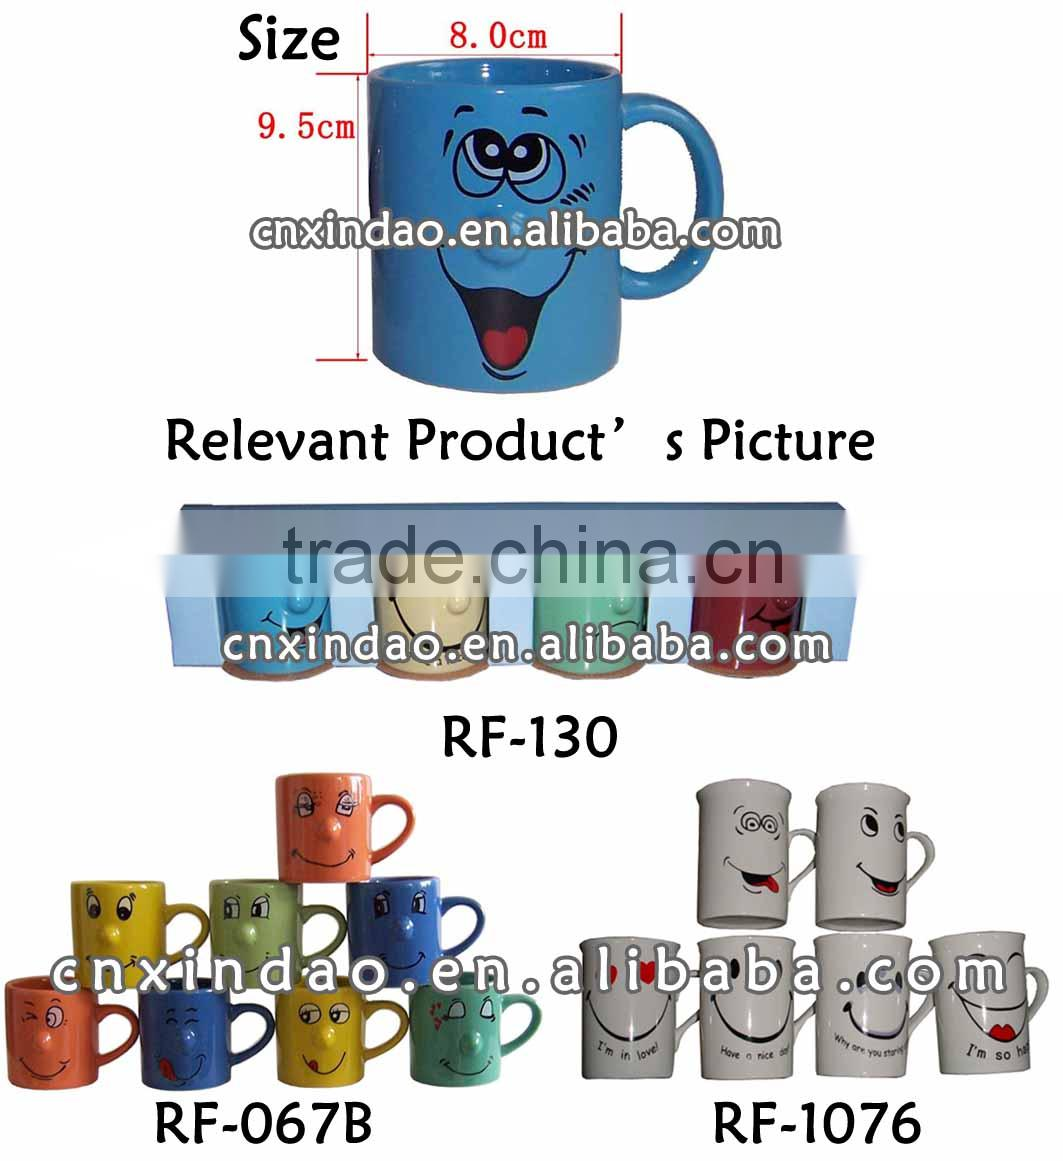 Can Shape Zibo Manufacure Smile Face Print Promotional Porcelain Coffee Mug with Gift Box